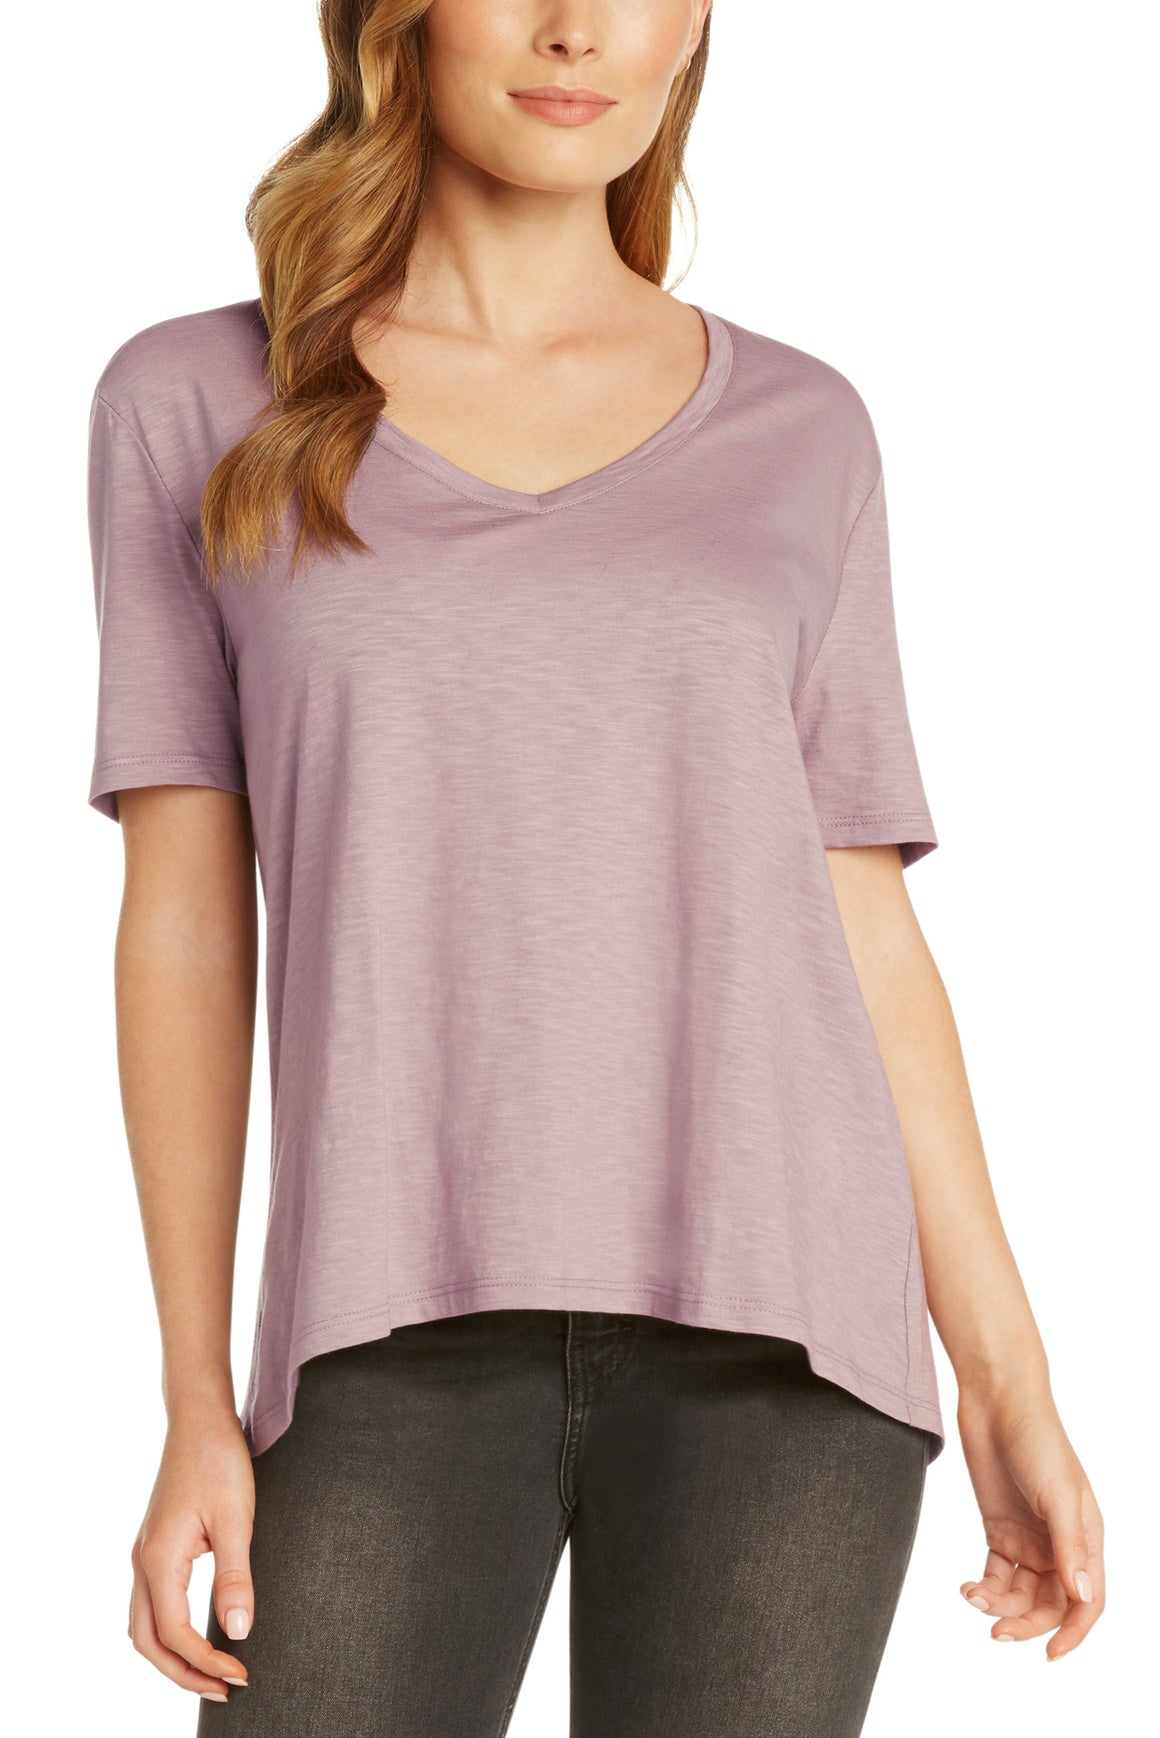 Vintage Feel V-Neck Tee | Lavender, Indigo, Black, Military, Vellum